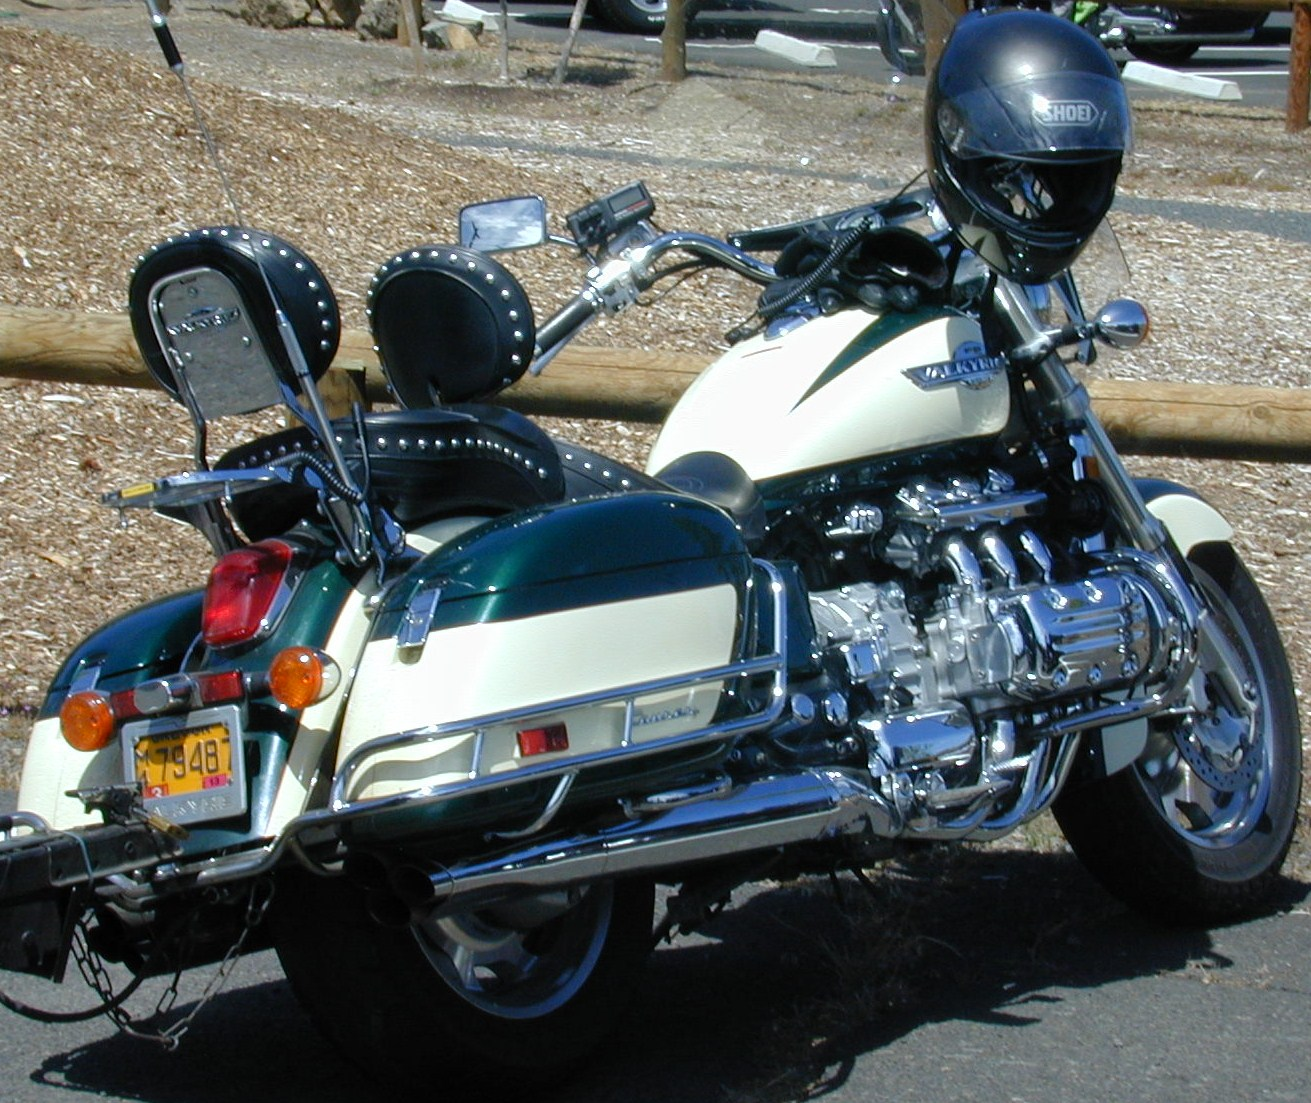 Click image for larger version  Name:Pilot Butte SP OR  7-11 golden wings motorcycle 004.JPG Views:96 Size:390.4 KB ID:148607